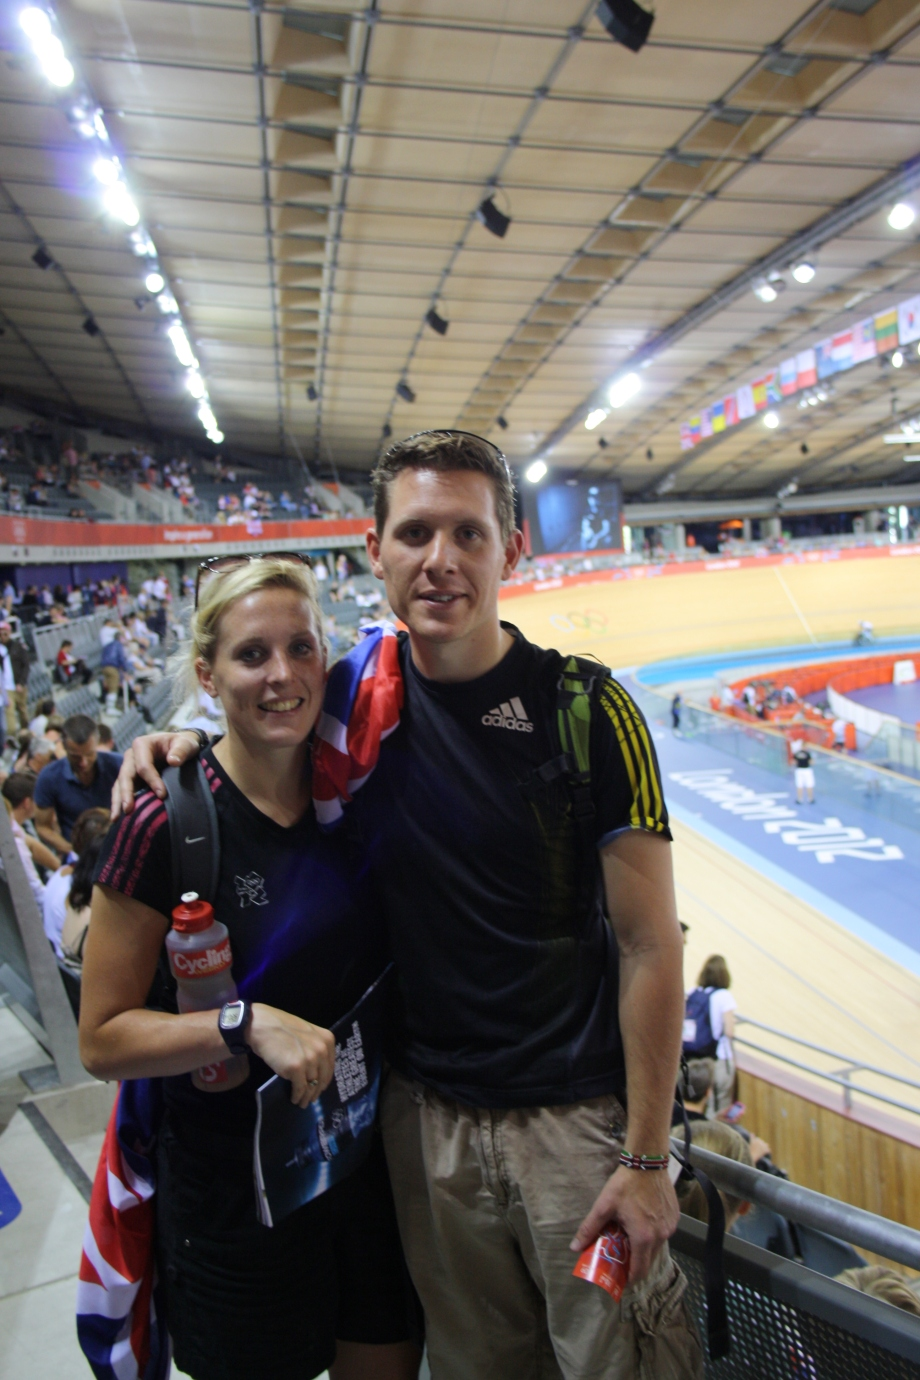 Me and my boyfriend in the Velodrome.